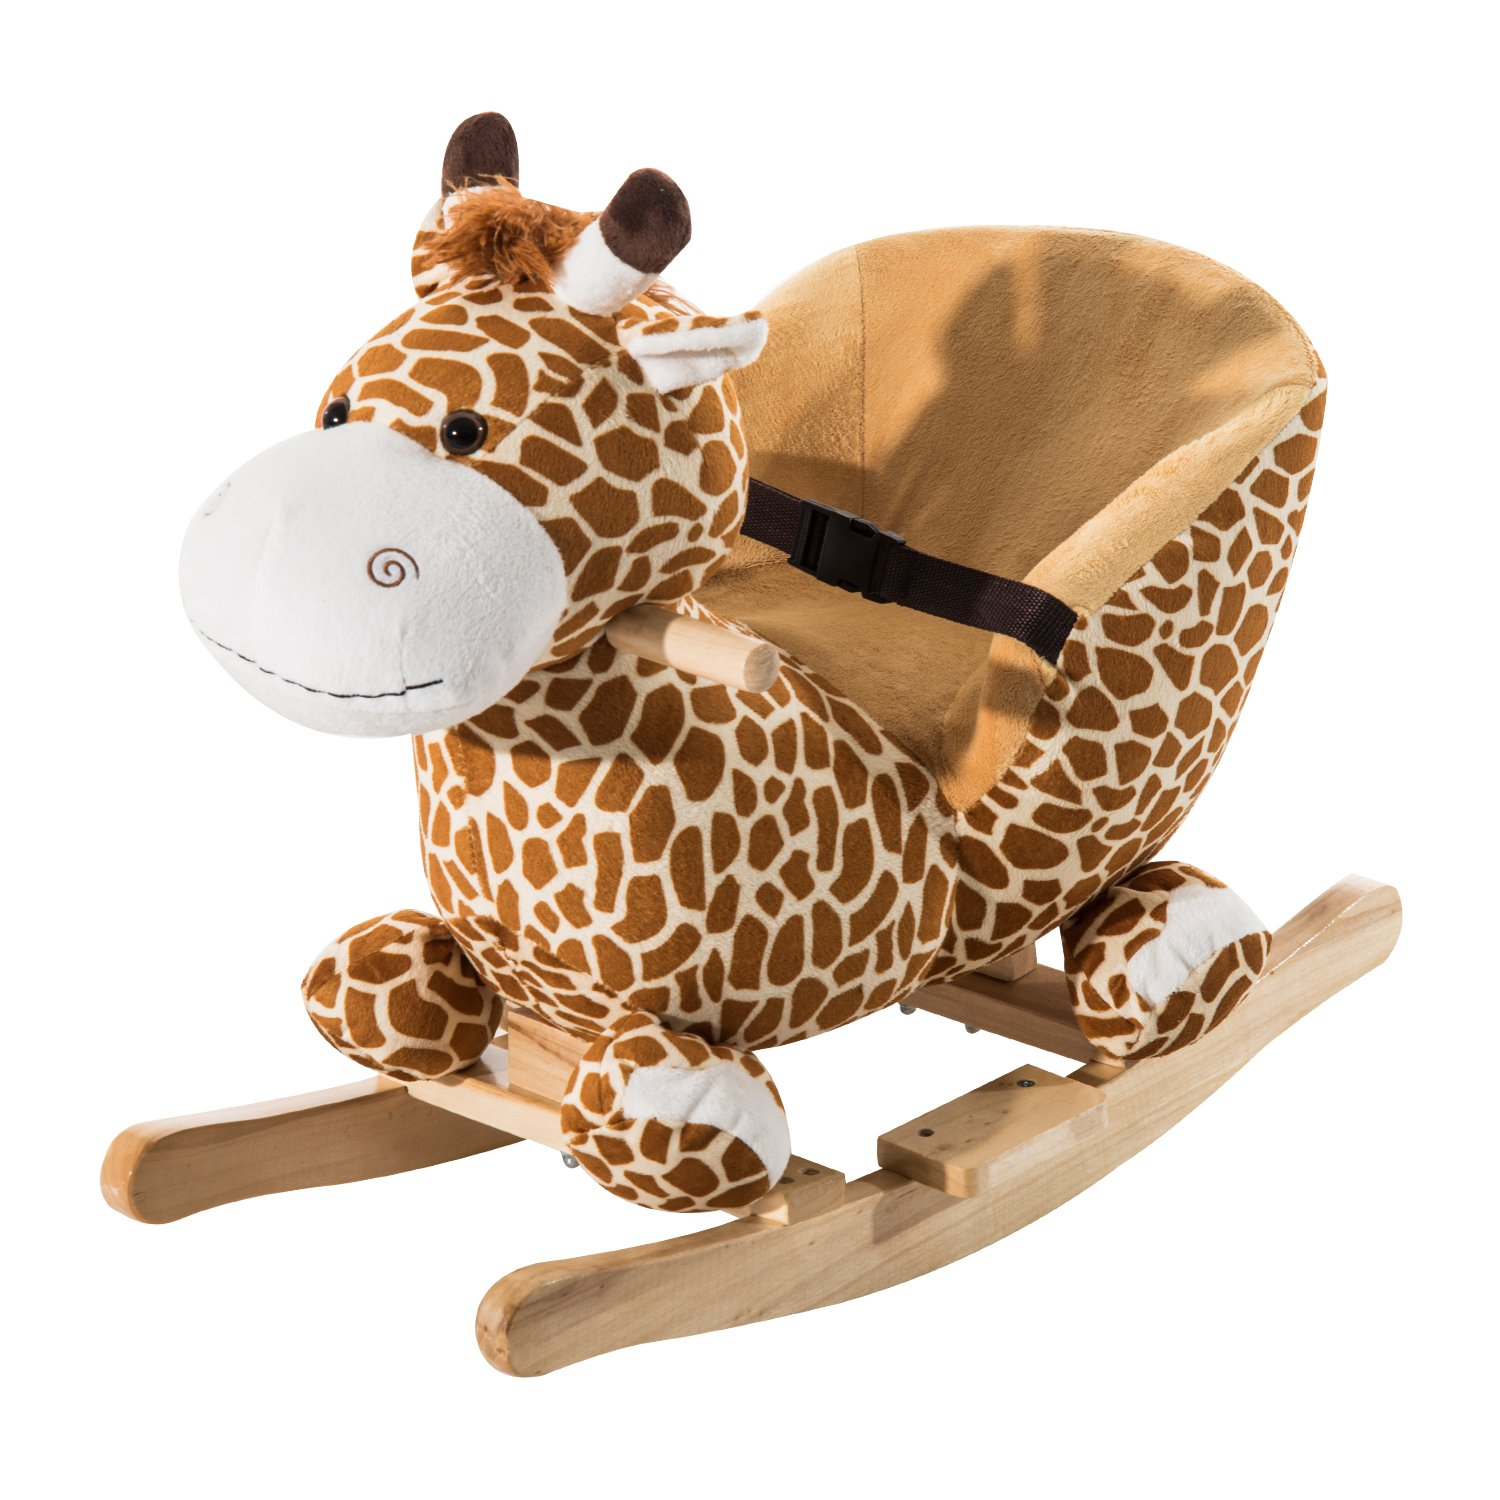 Qaba Wooden Plush Children Kids Rocking Horse Chair for Toddlers with Sound and Safety Belt, Giraffe Theme Aosom Canada 54-0011